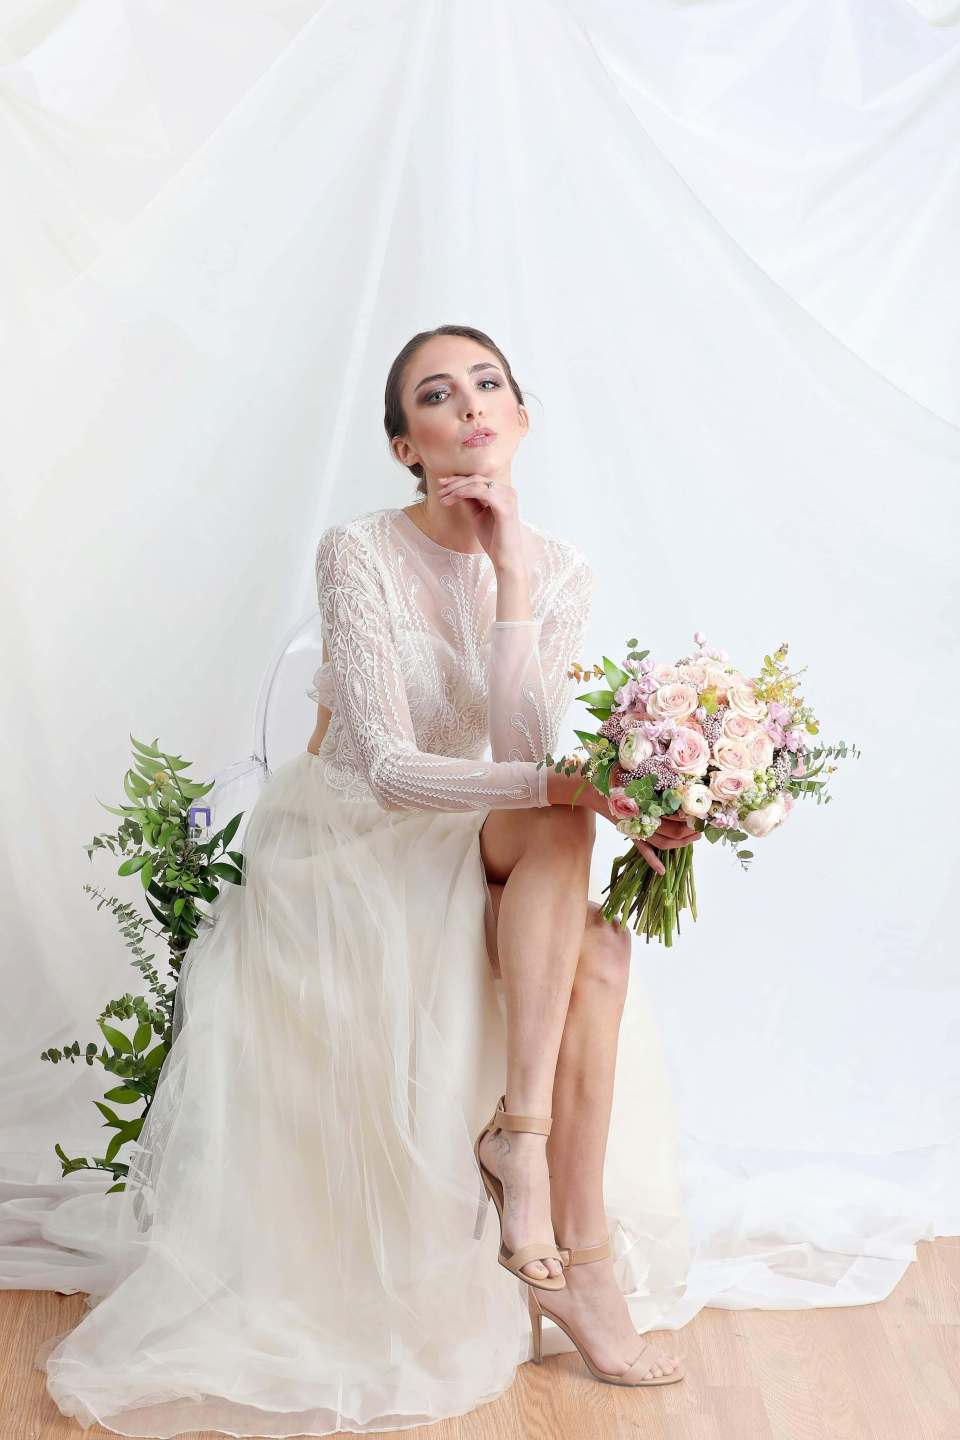 A portrait of a model bride wearing a sustainable wedding dress.